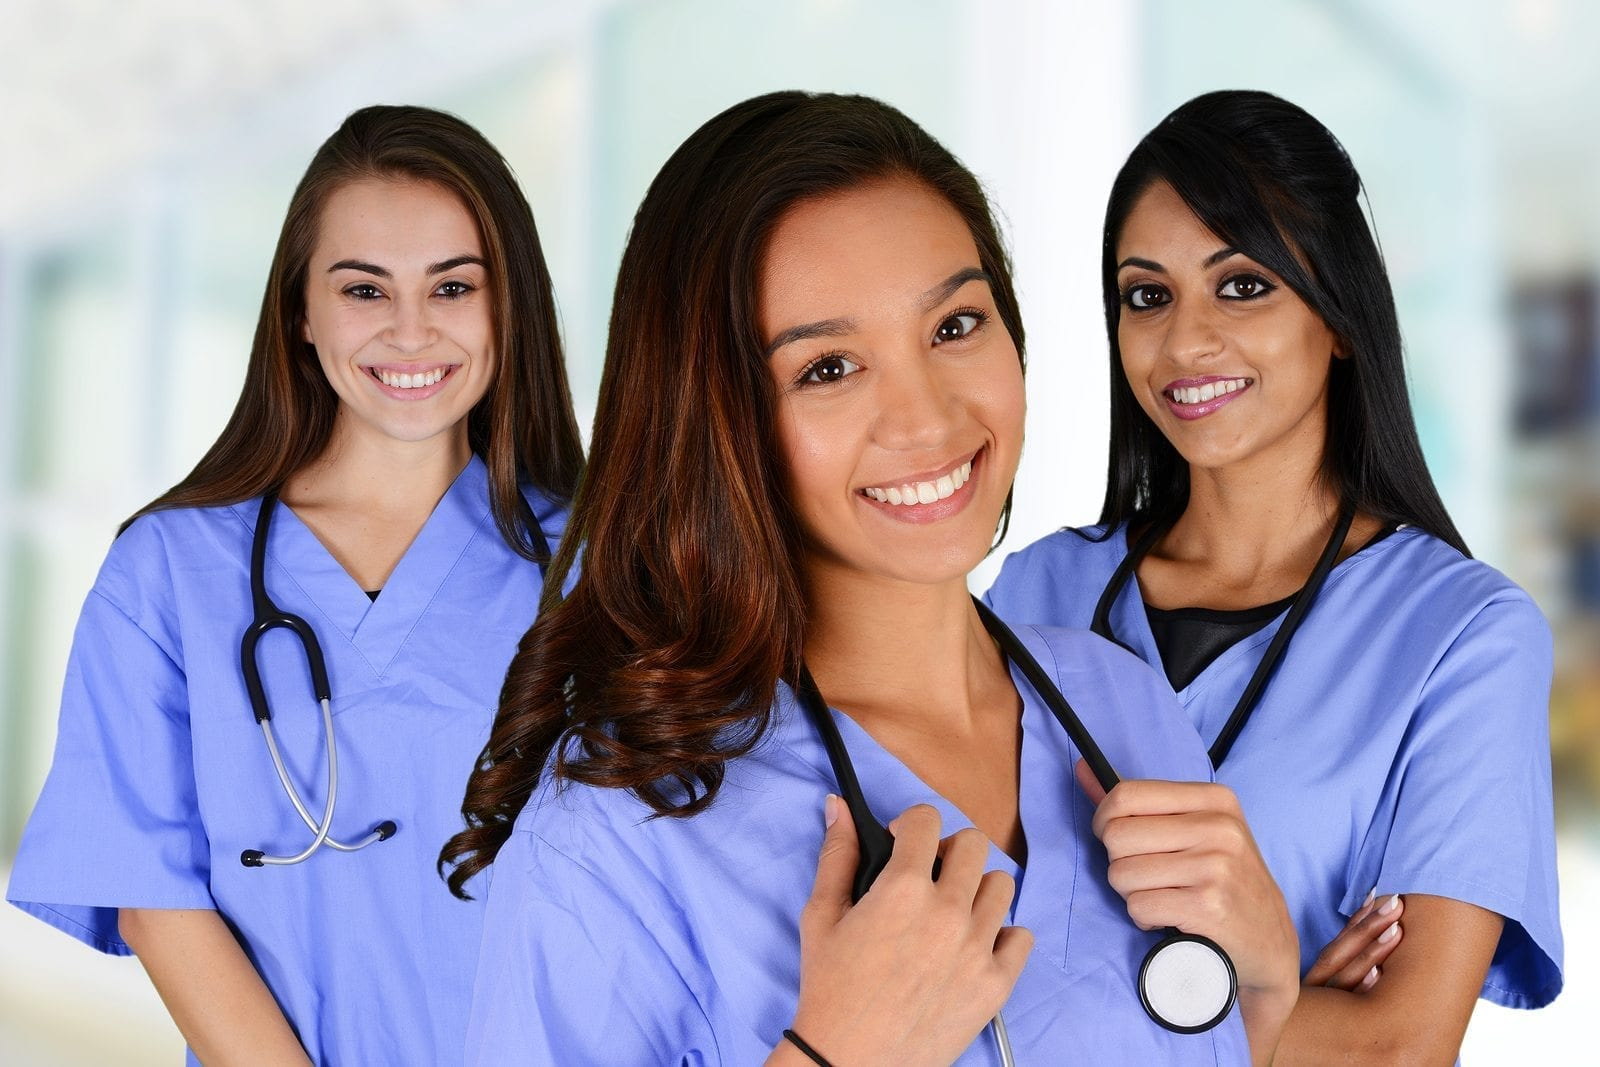 ohio lpn training programs and requirements lpn programs columbus oh